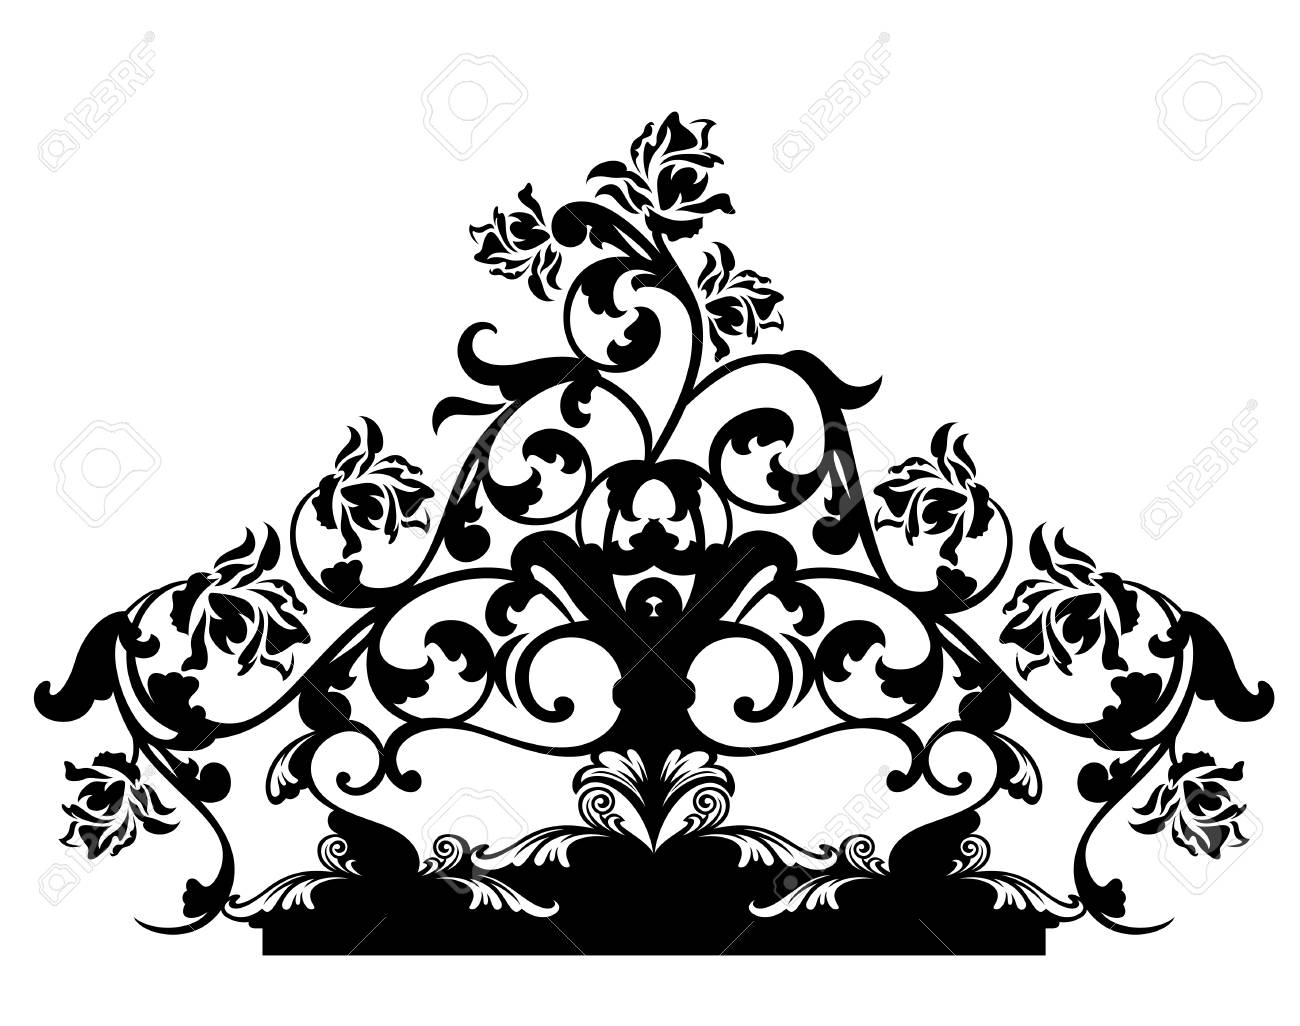 Rose Flowers Calligraphic Design Black And White Vector Decor